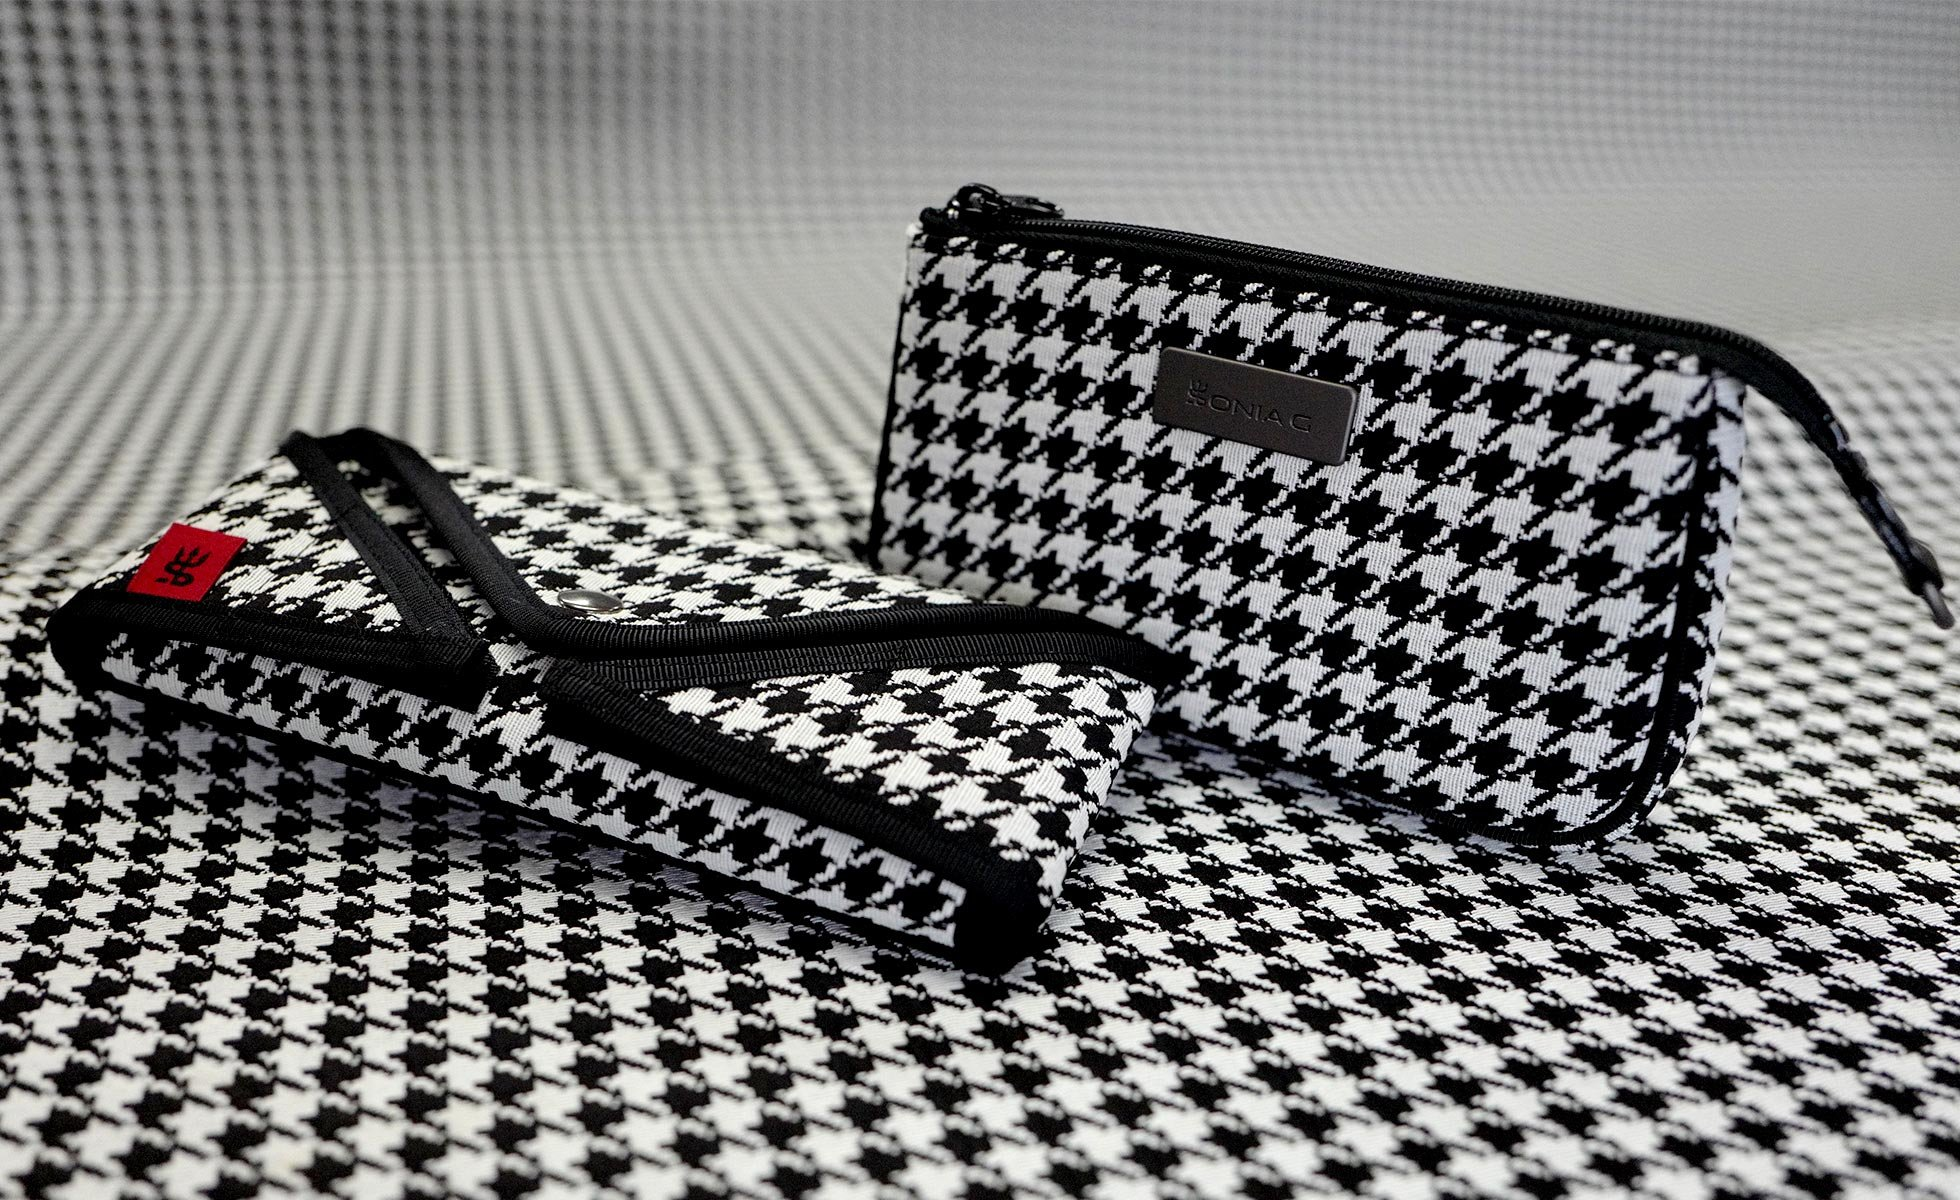 Sonia G. Limited Edition Houndstooth Collection